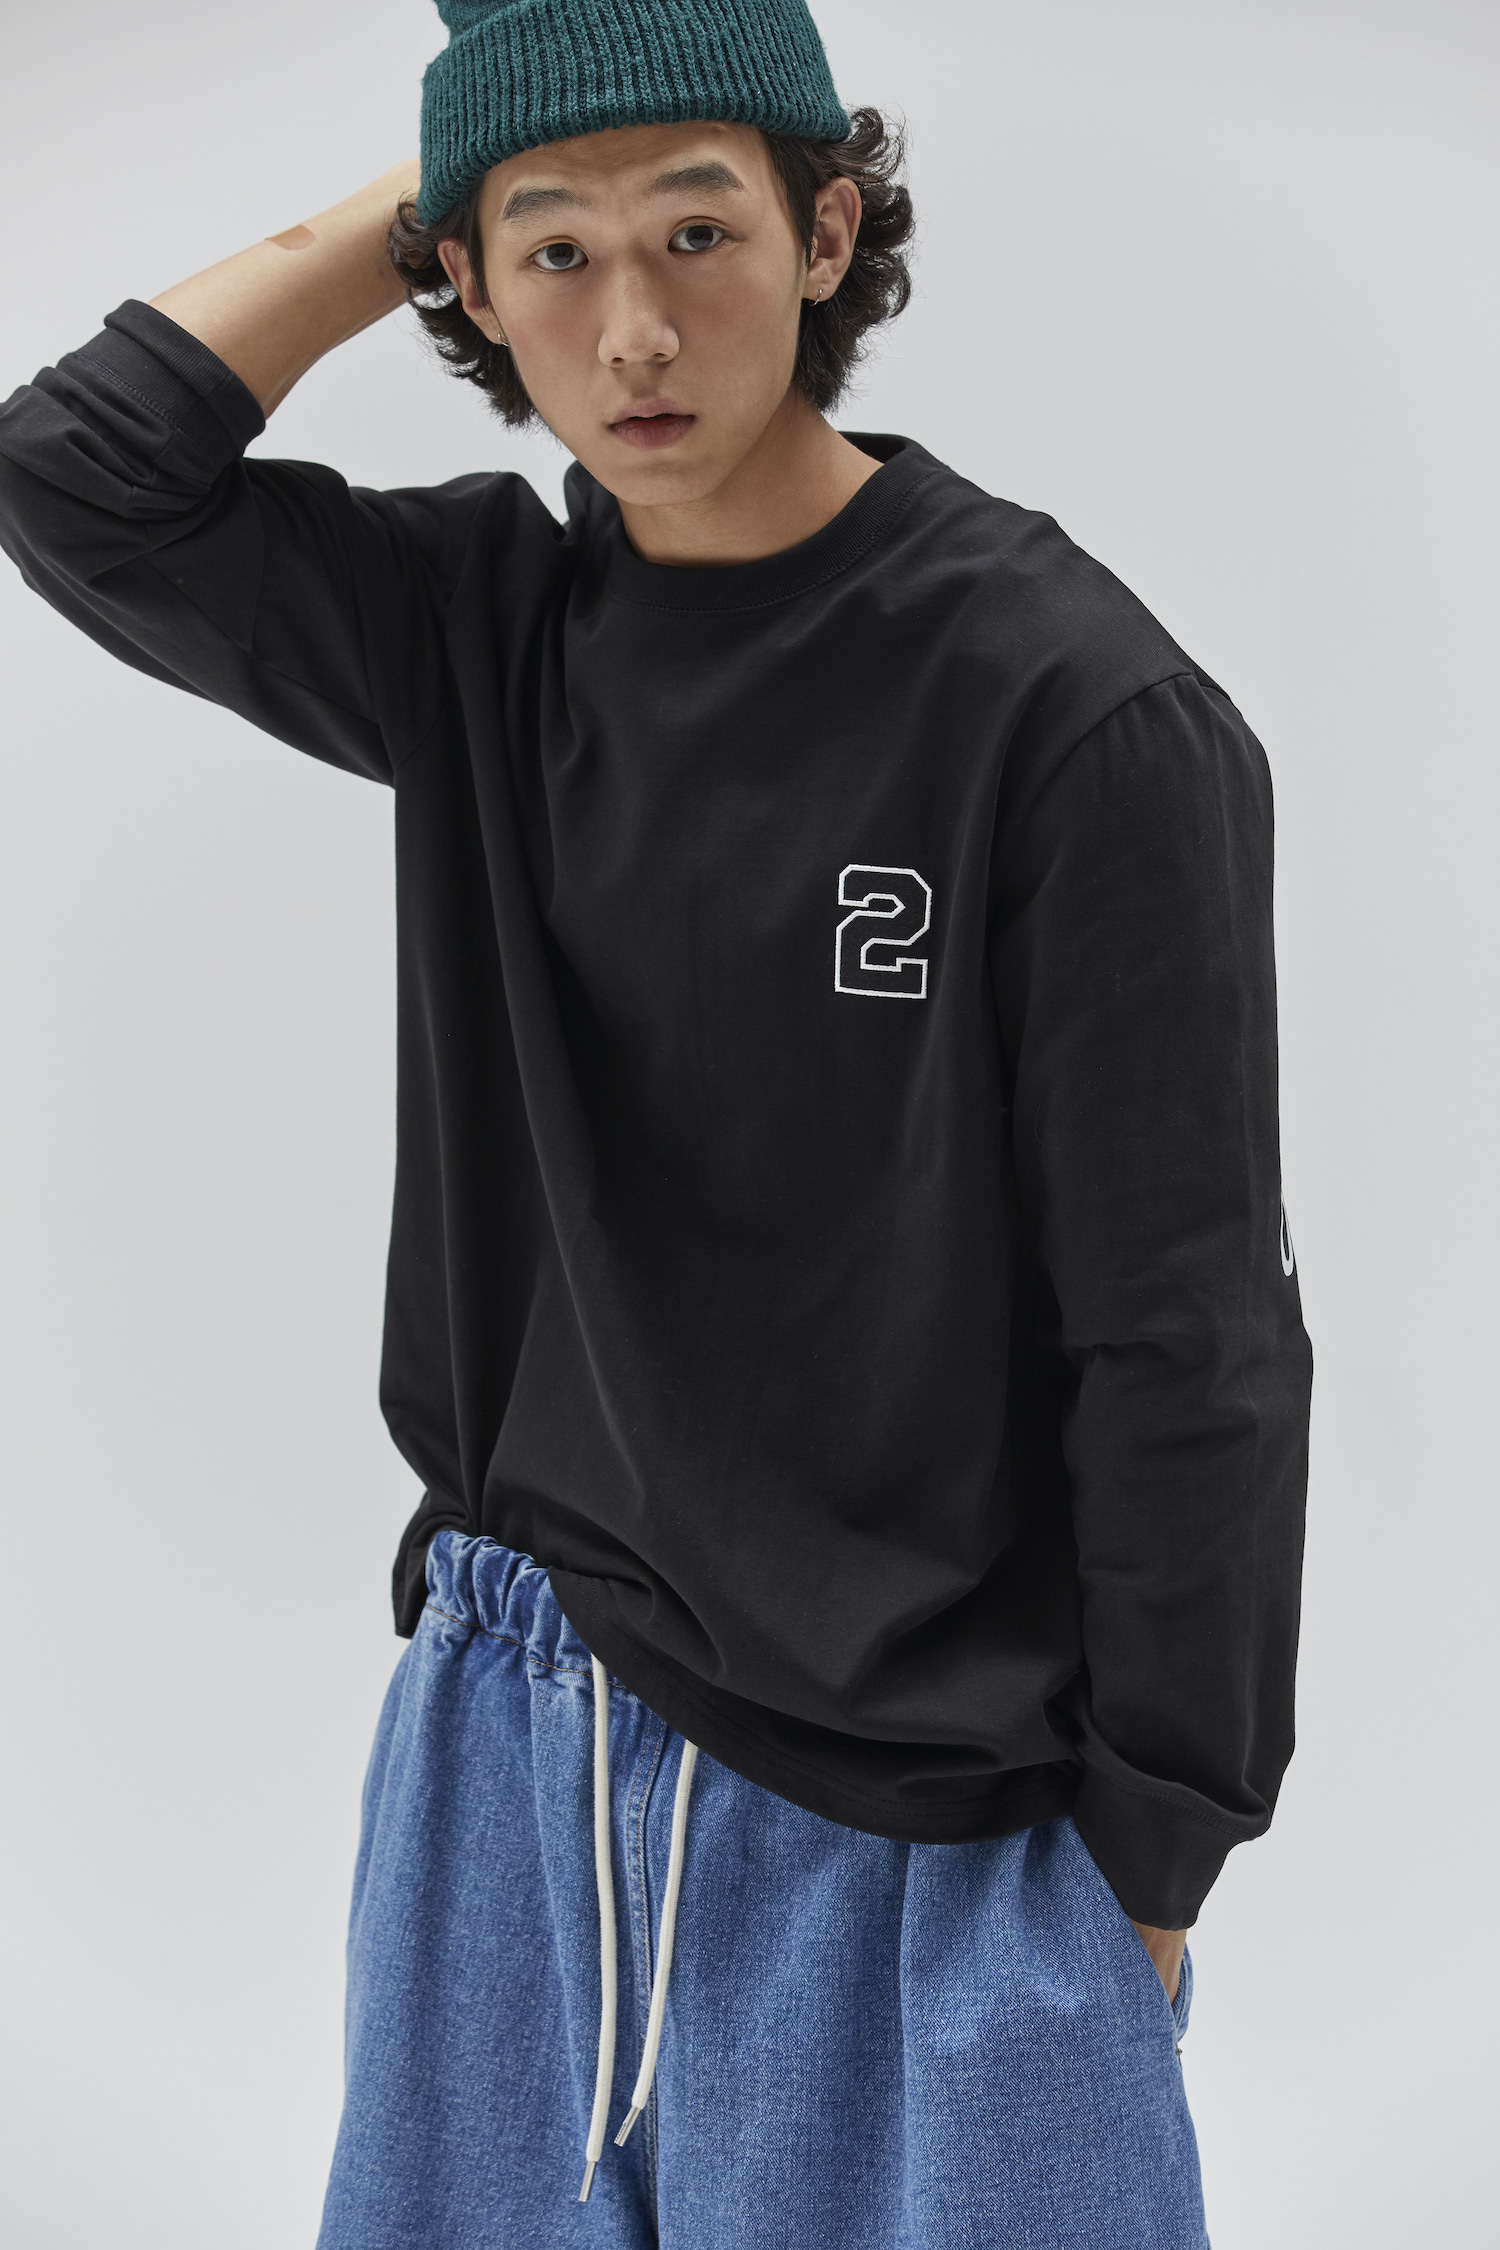 2020 LONG SLEEVE T SHIRT BLACK